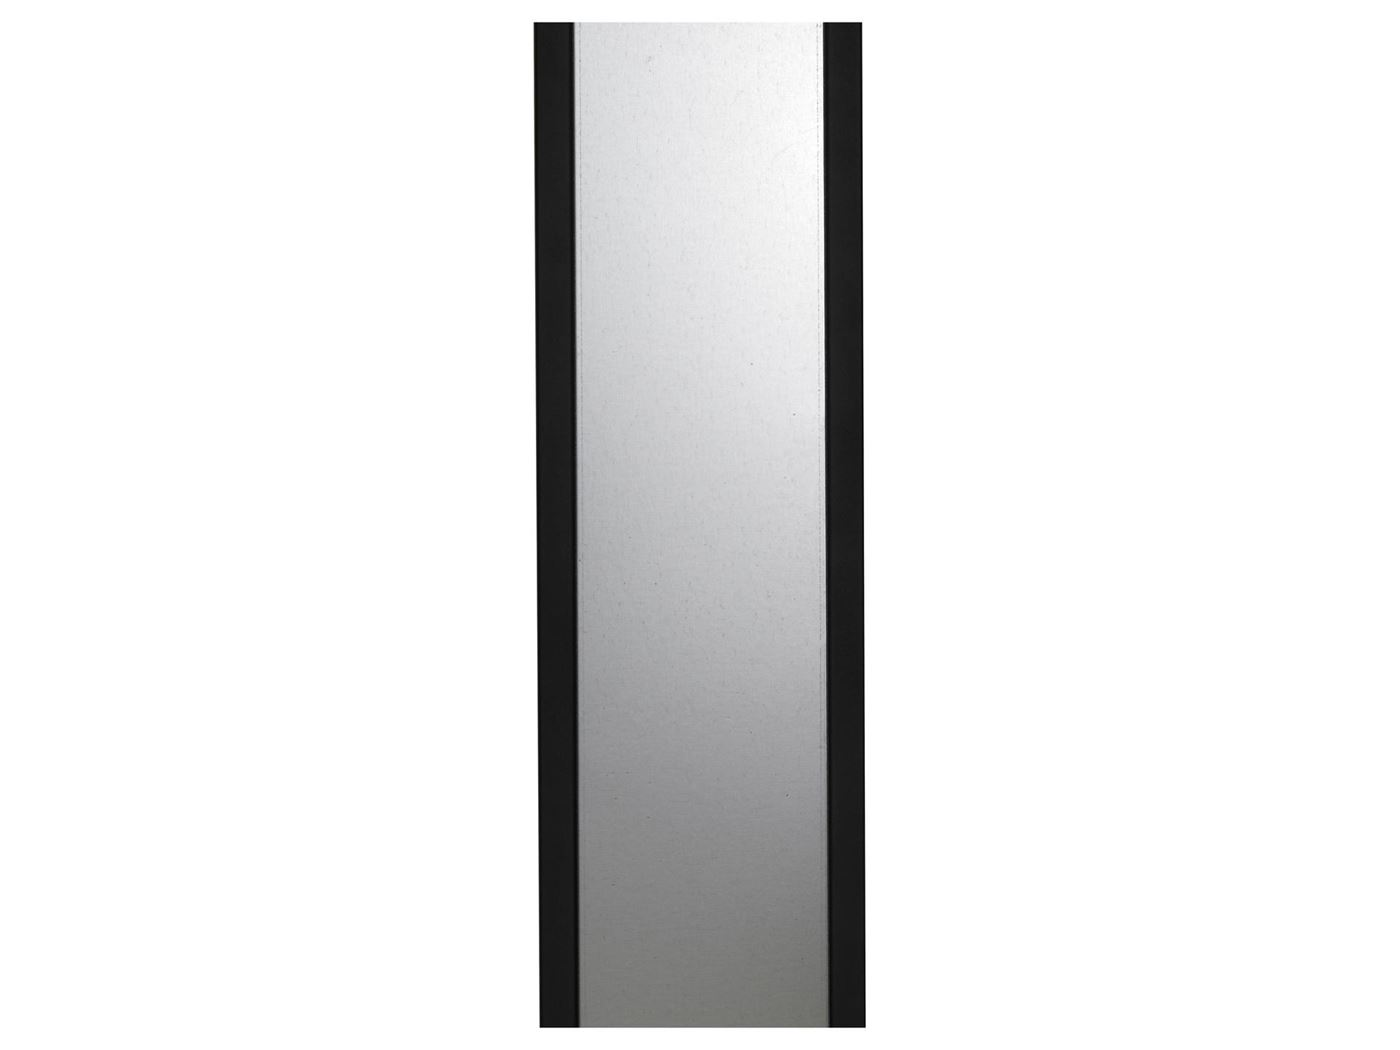 stand 1001 black with galvanized front